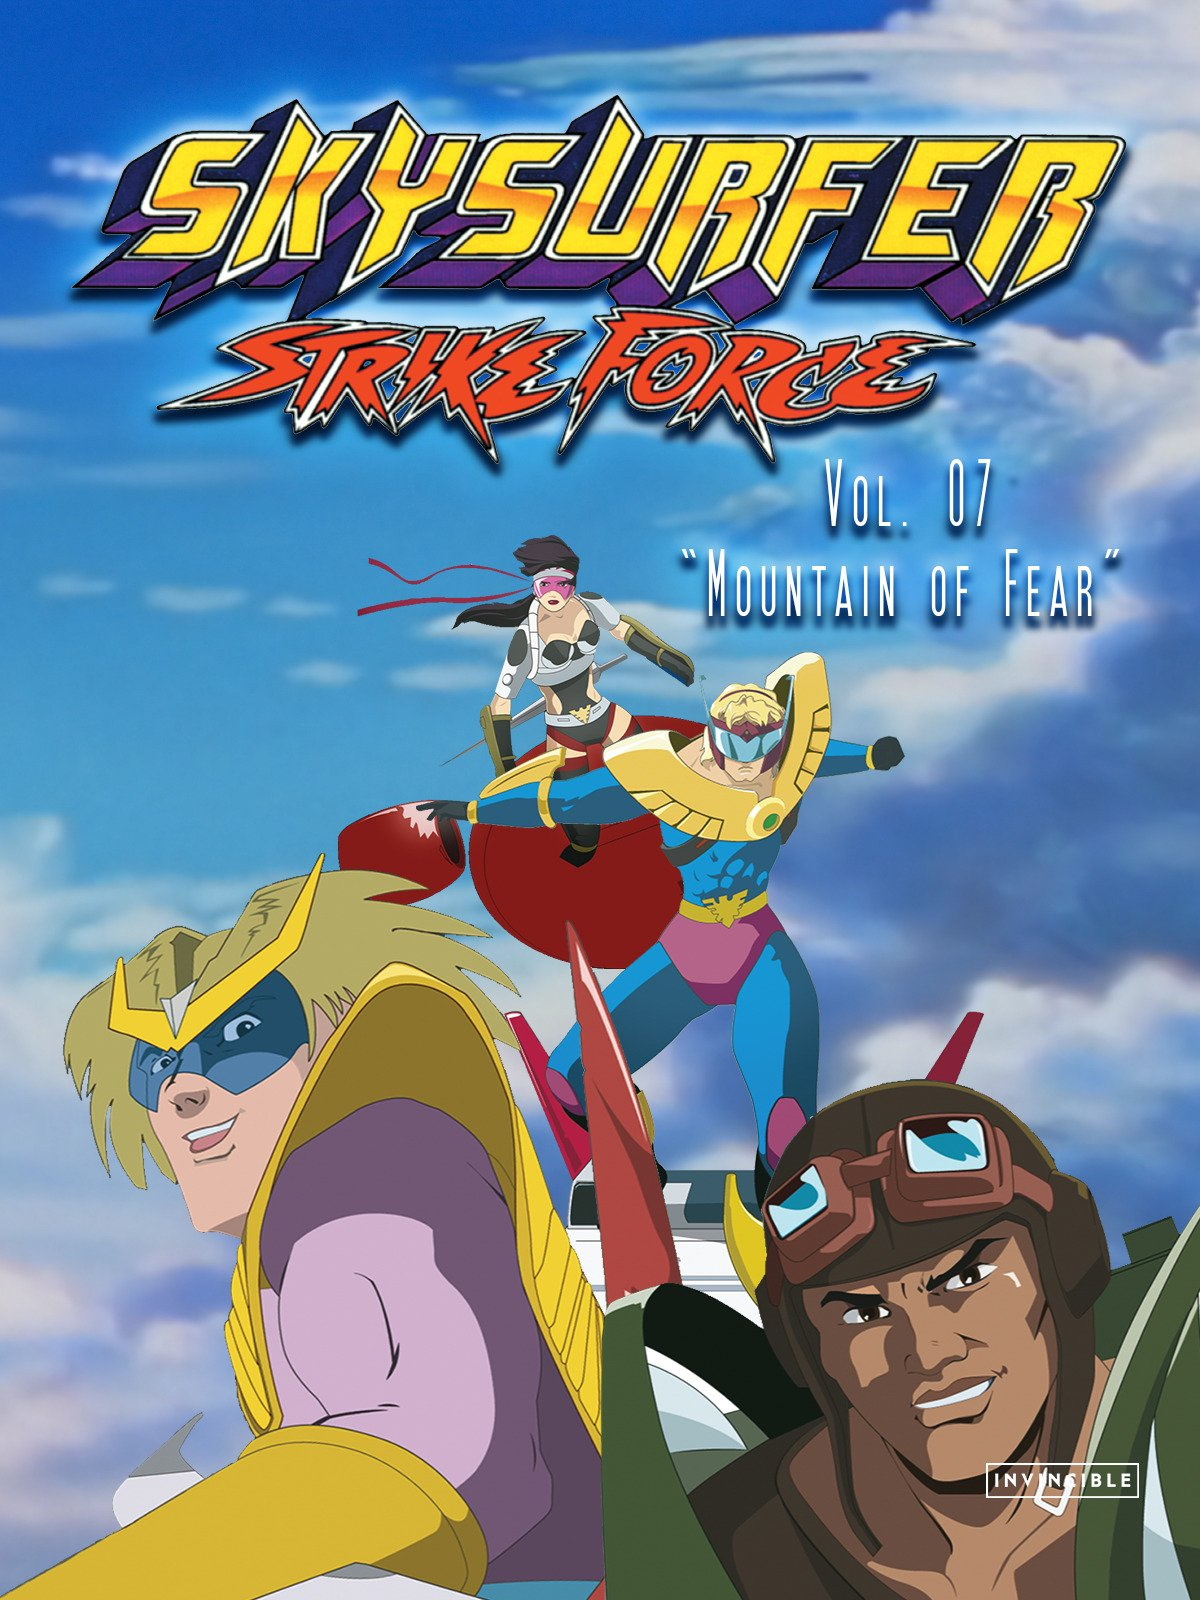 Skysurfer Strike Force Vol. 07Mountain of Fear on Amazon Prime Video UK